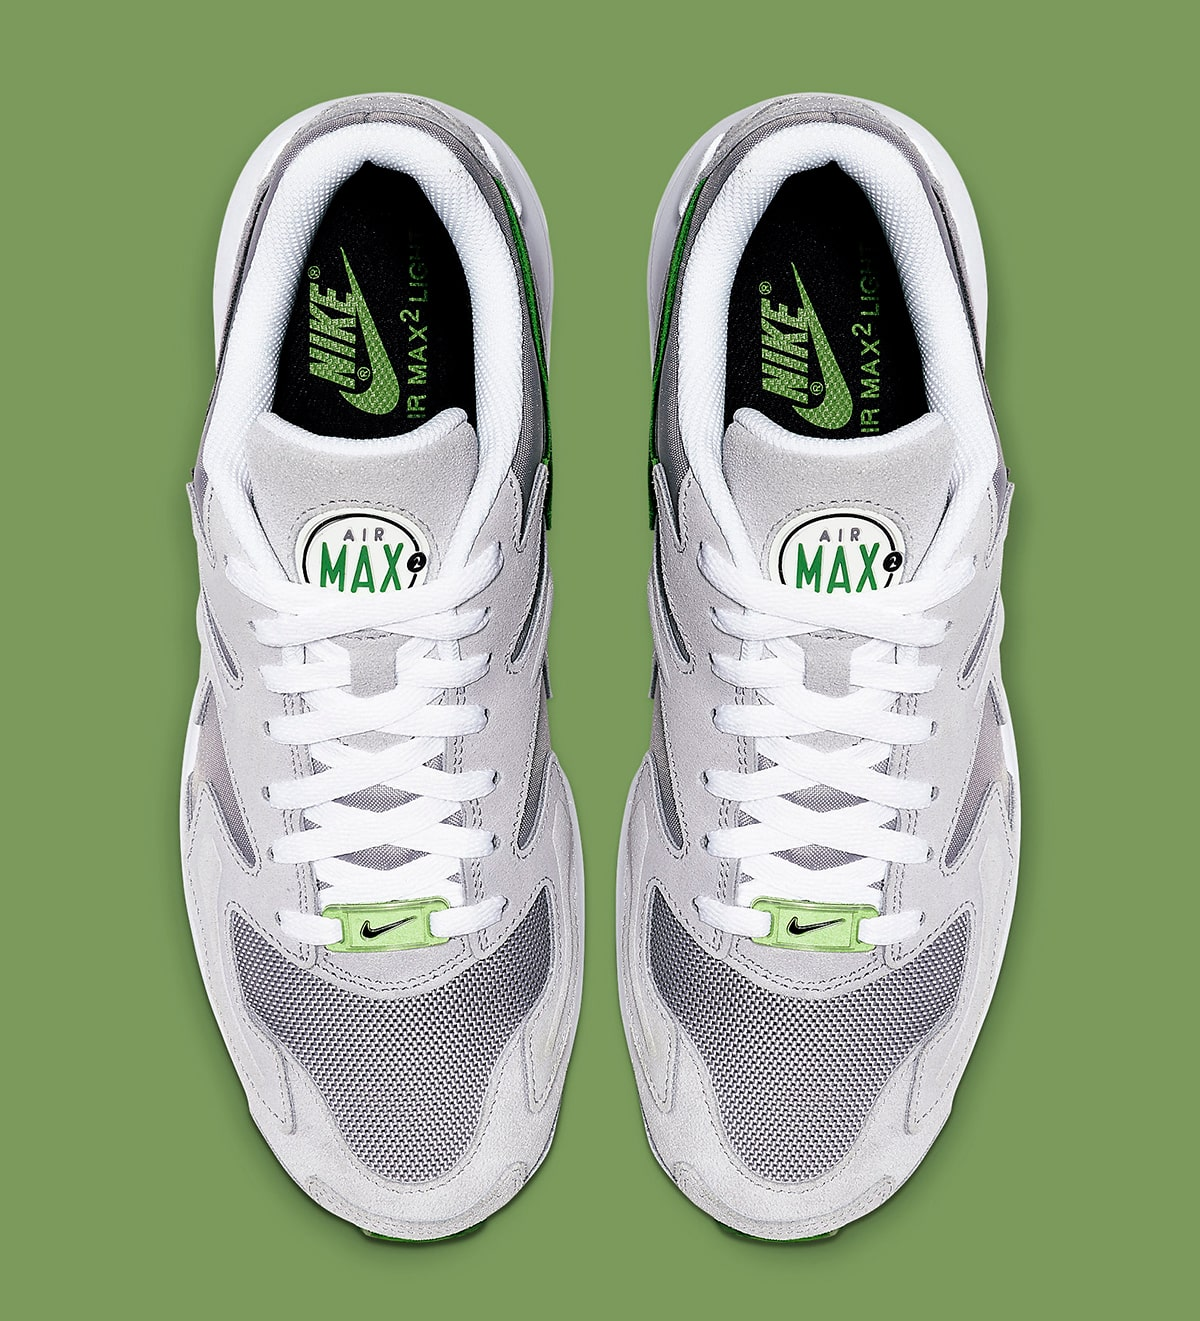 Available Now The Air Max2 Light Copies The Iconic